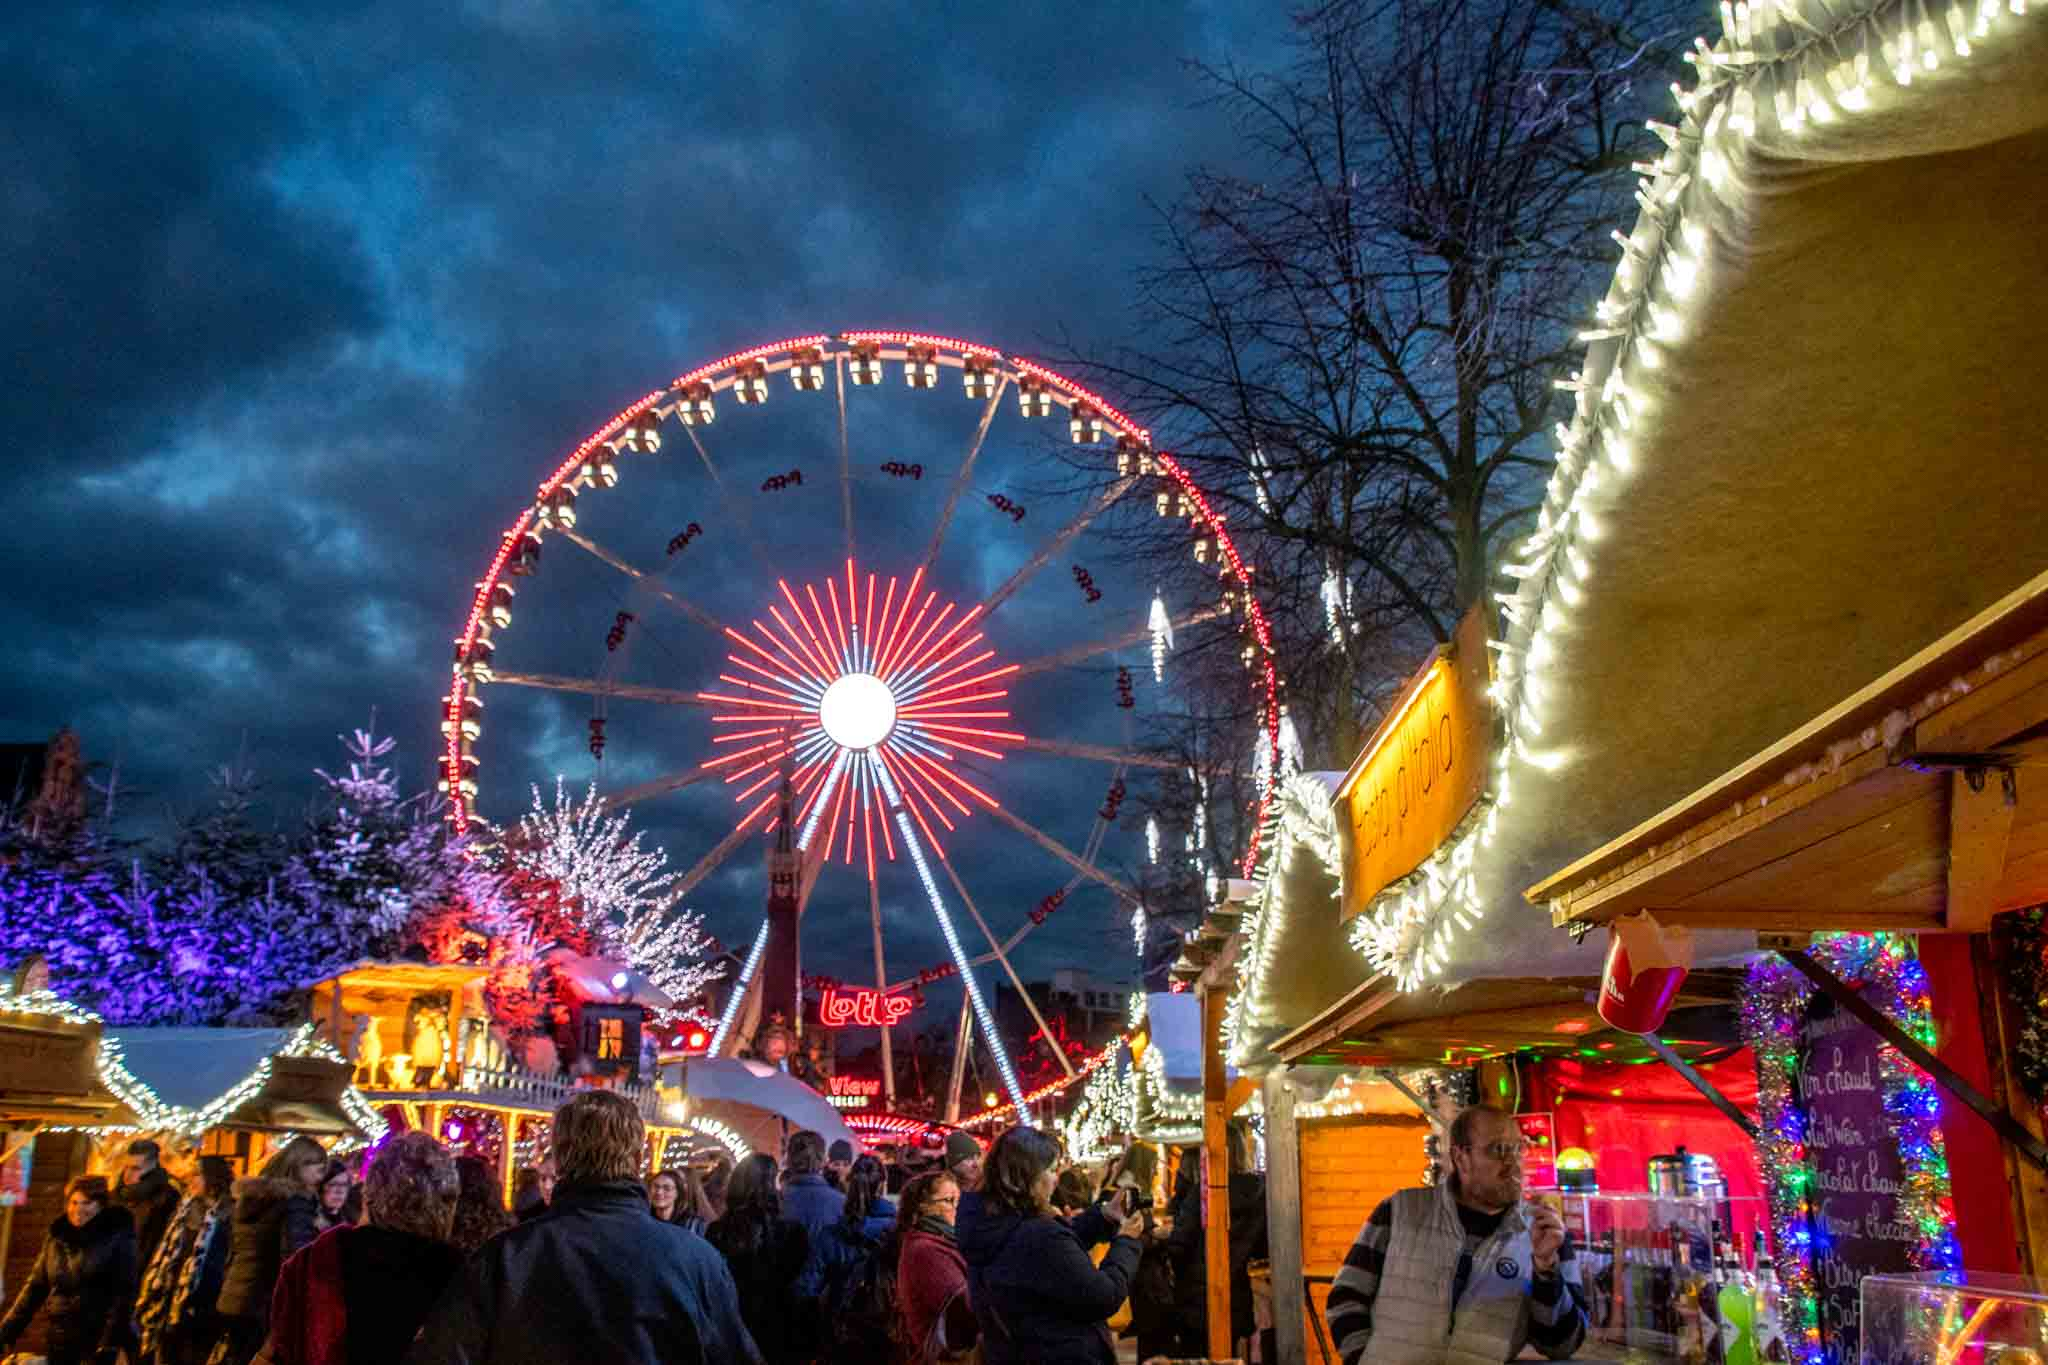 Ferris wheel, vendors, and shoppers at Christmas market